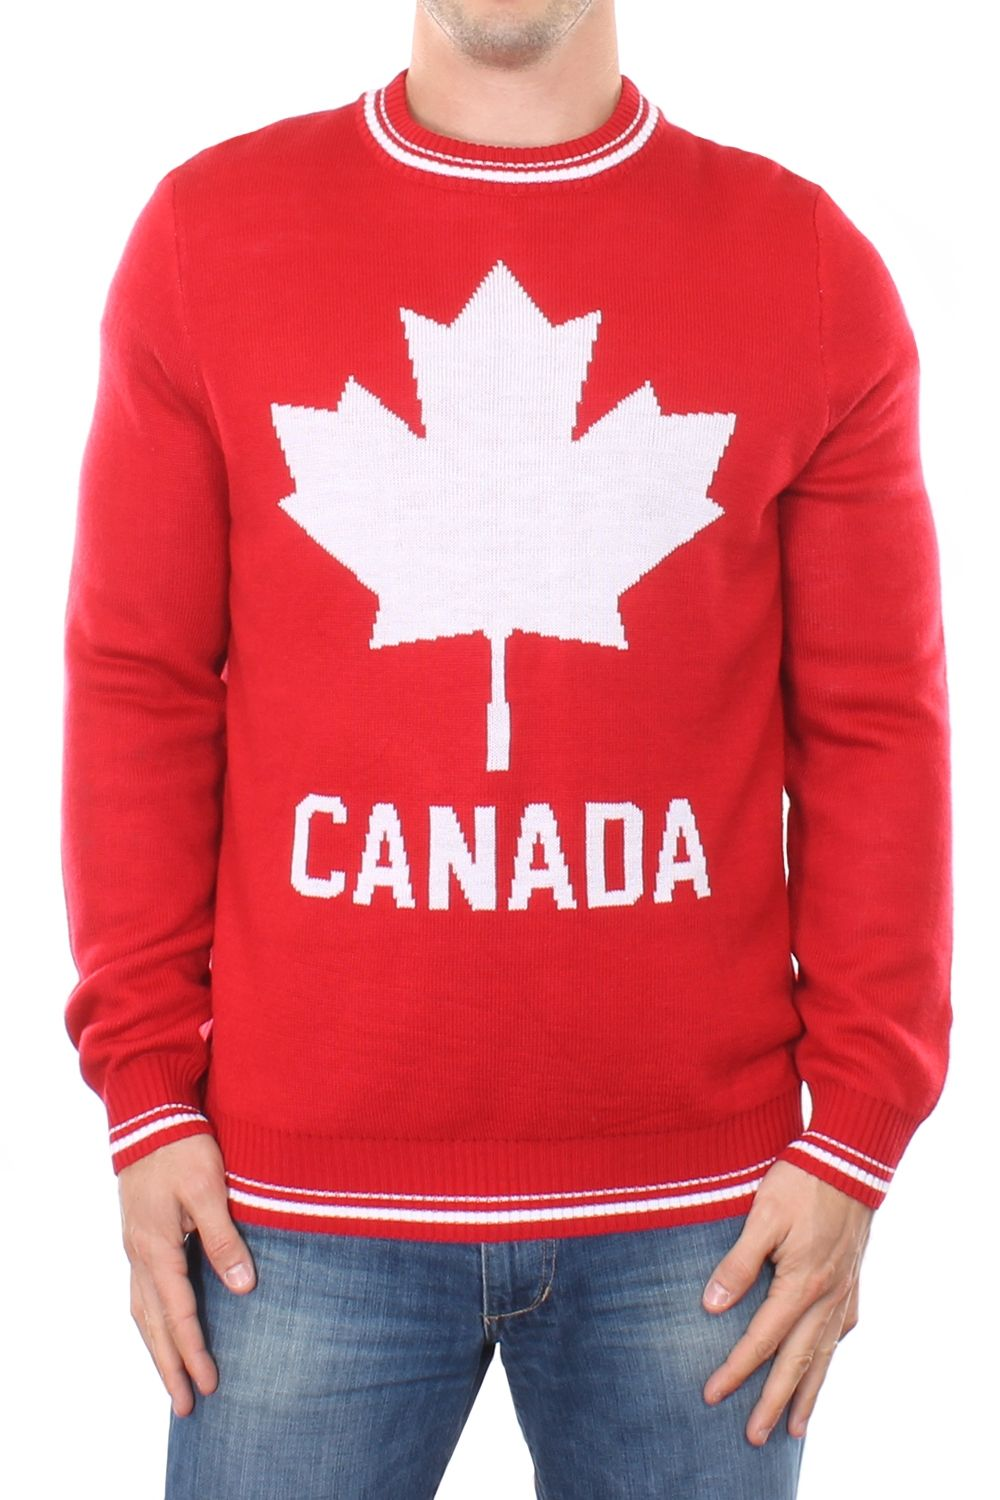 Men's Canada Sweater | Red sweaters, Middle and Leaves